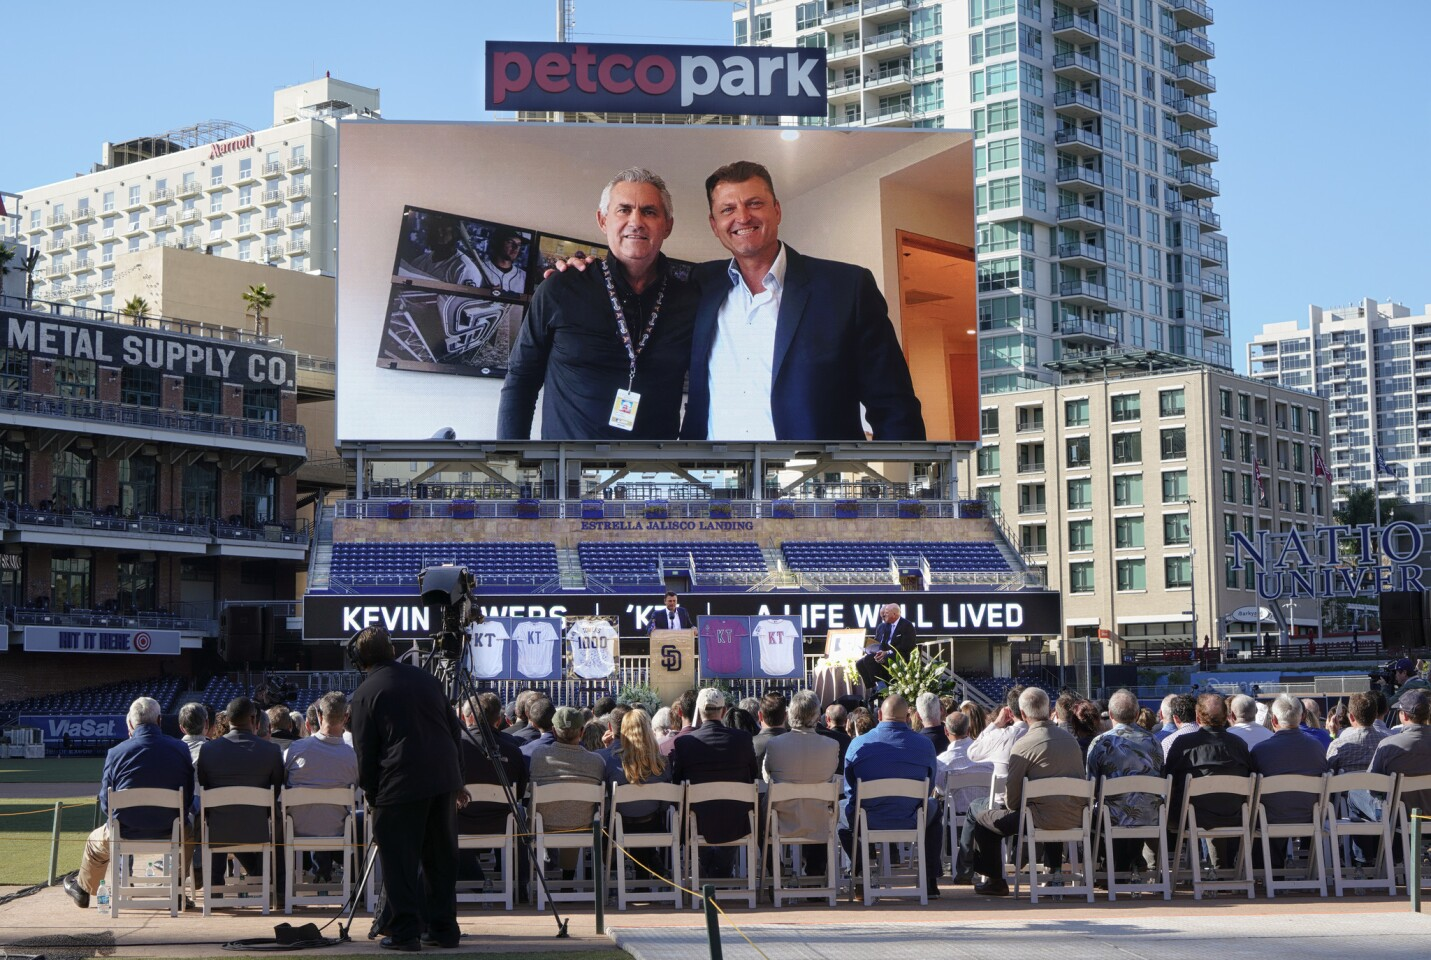 Former Padres and Hall of Famer Trevor Hoffman spoke to the crowd and shared a few memories of Kevin Towers at Petco Park during the celebration of Kevin Tower's life.